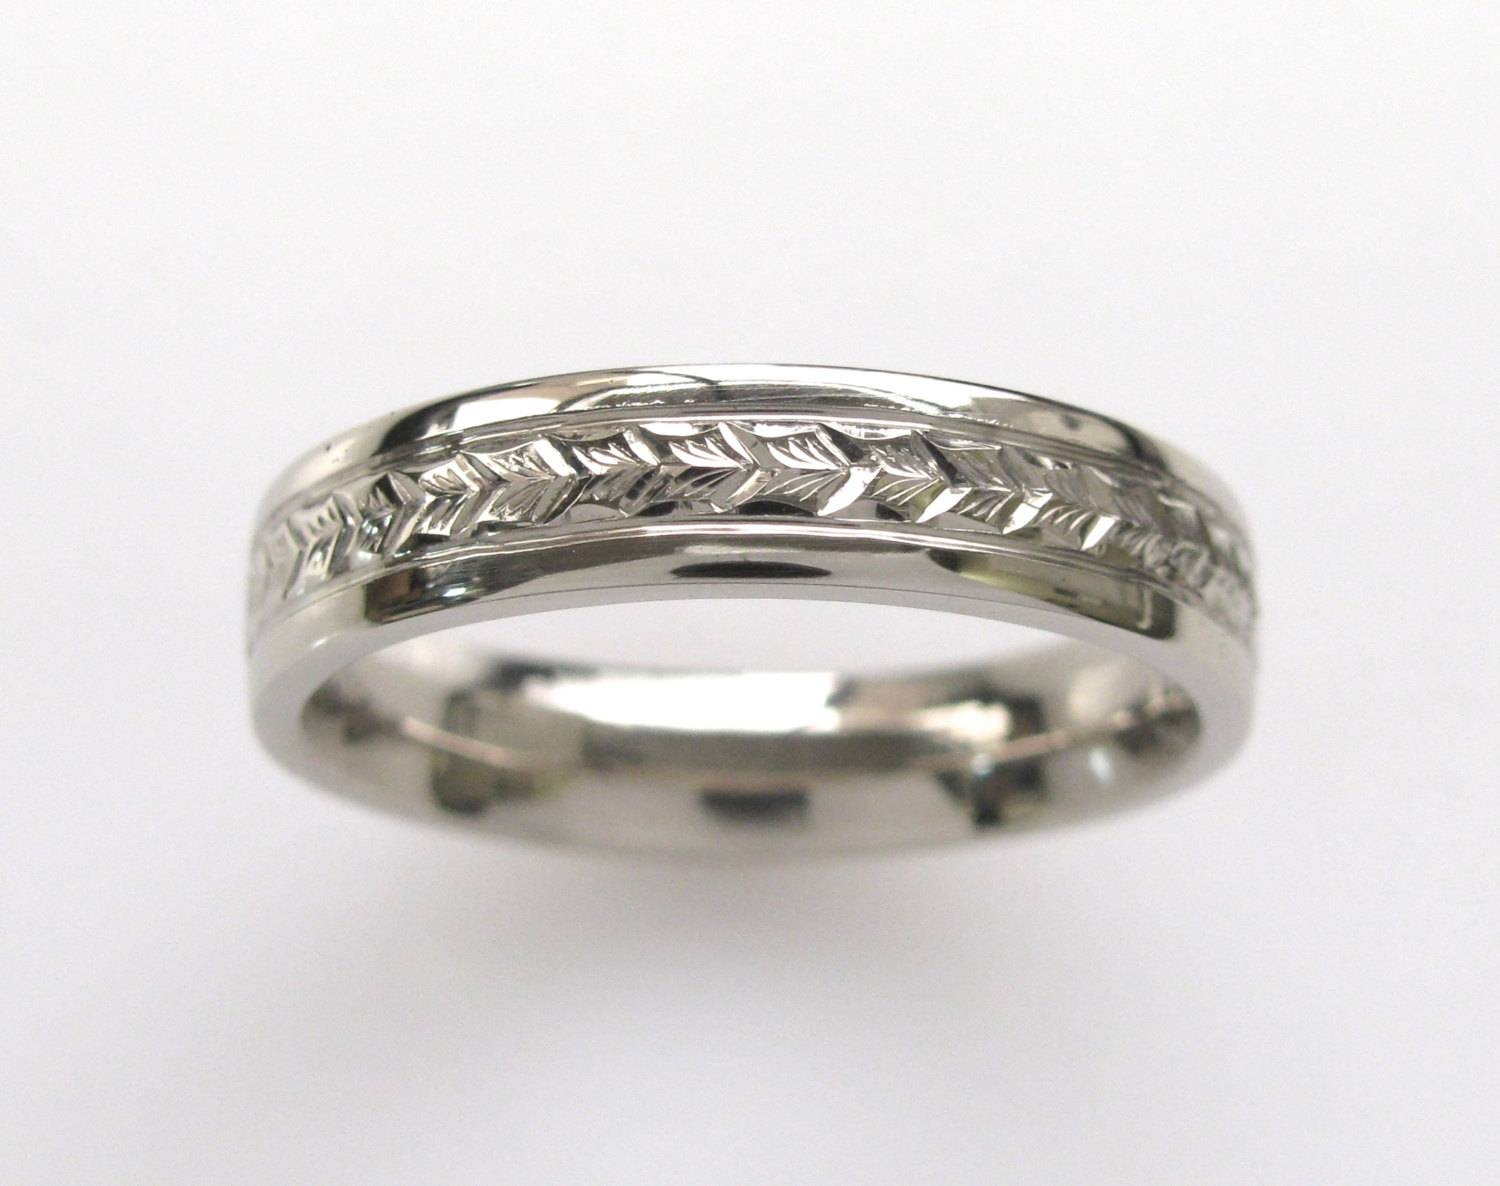 Hand Engraved Mens Wedding Band With Wheat Leaf Pattern With Engraving Mens Wedding Bands (View 6 of 15)